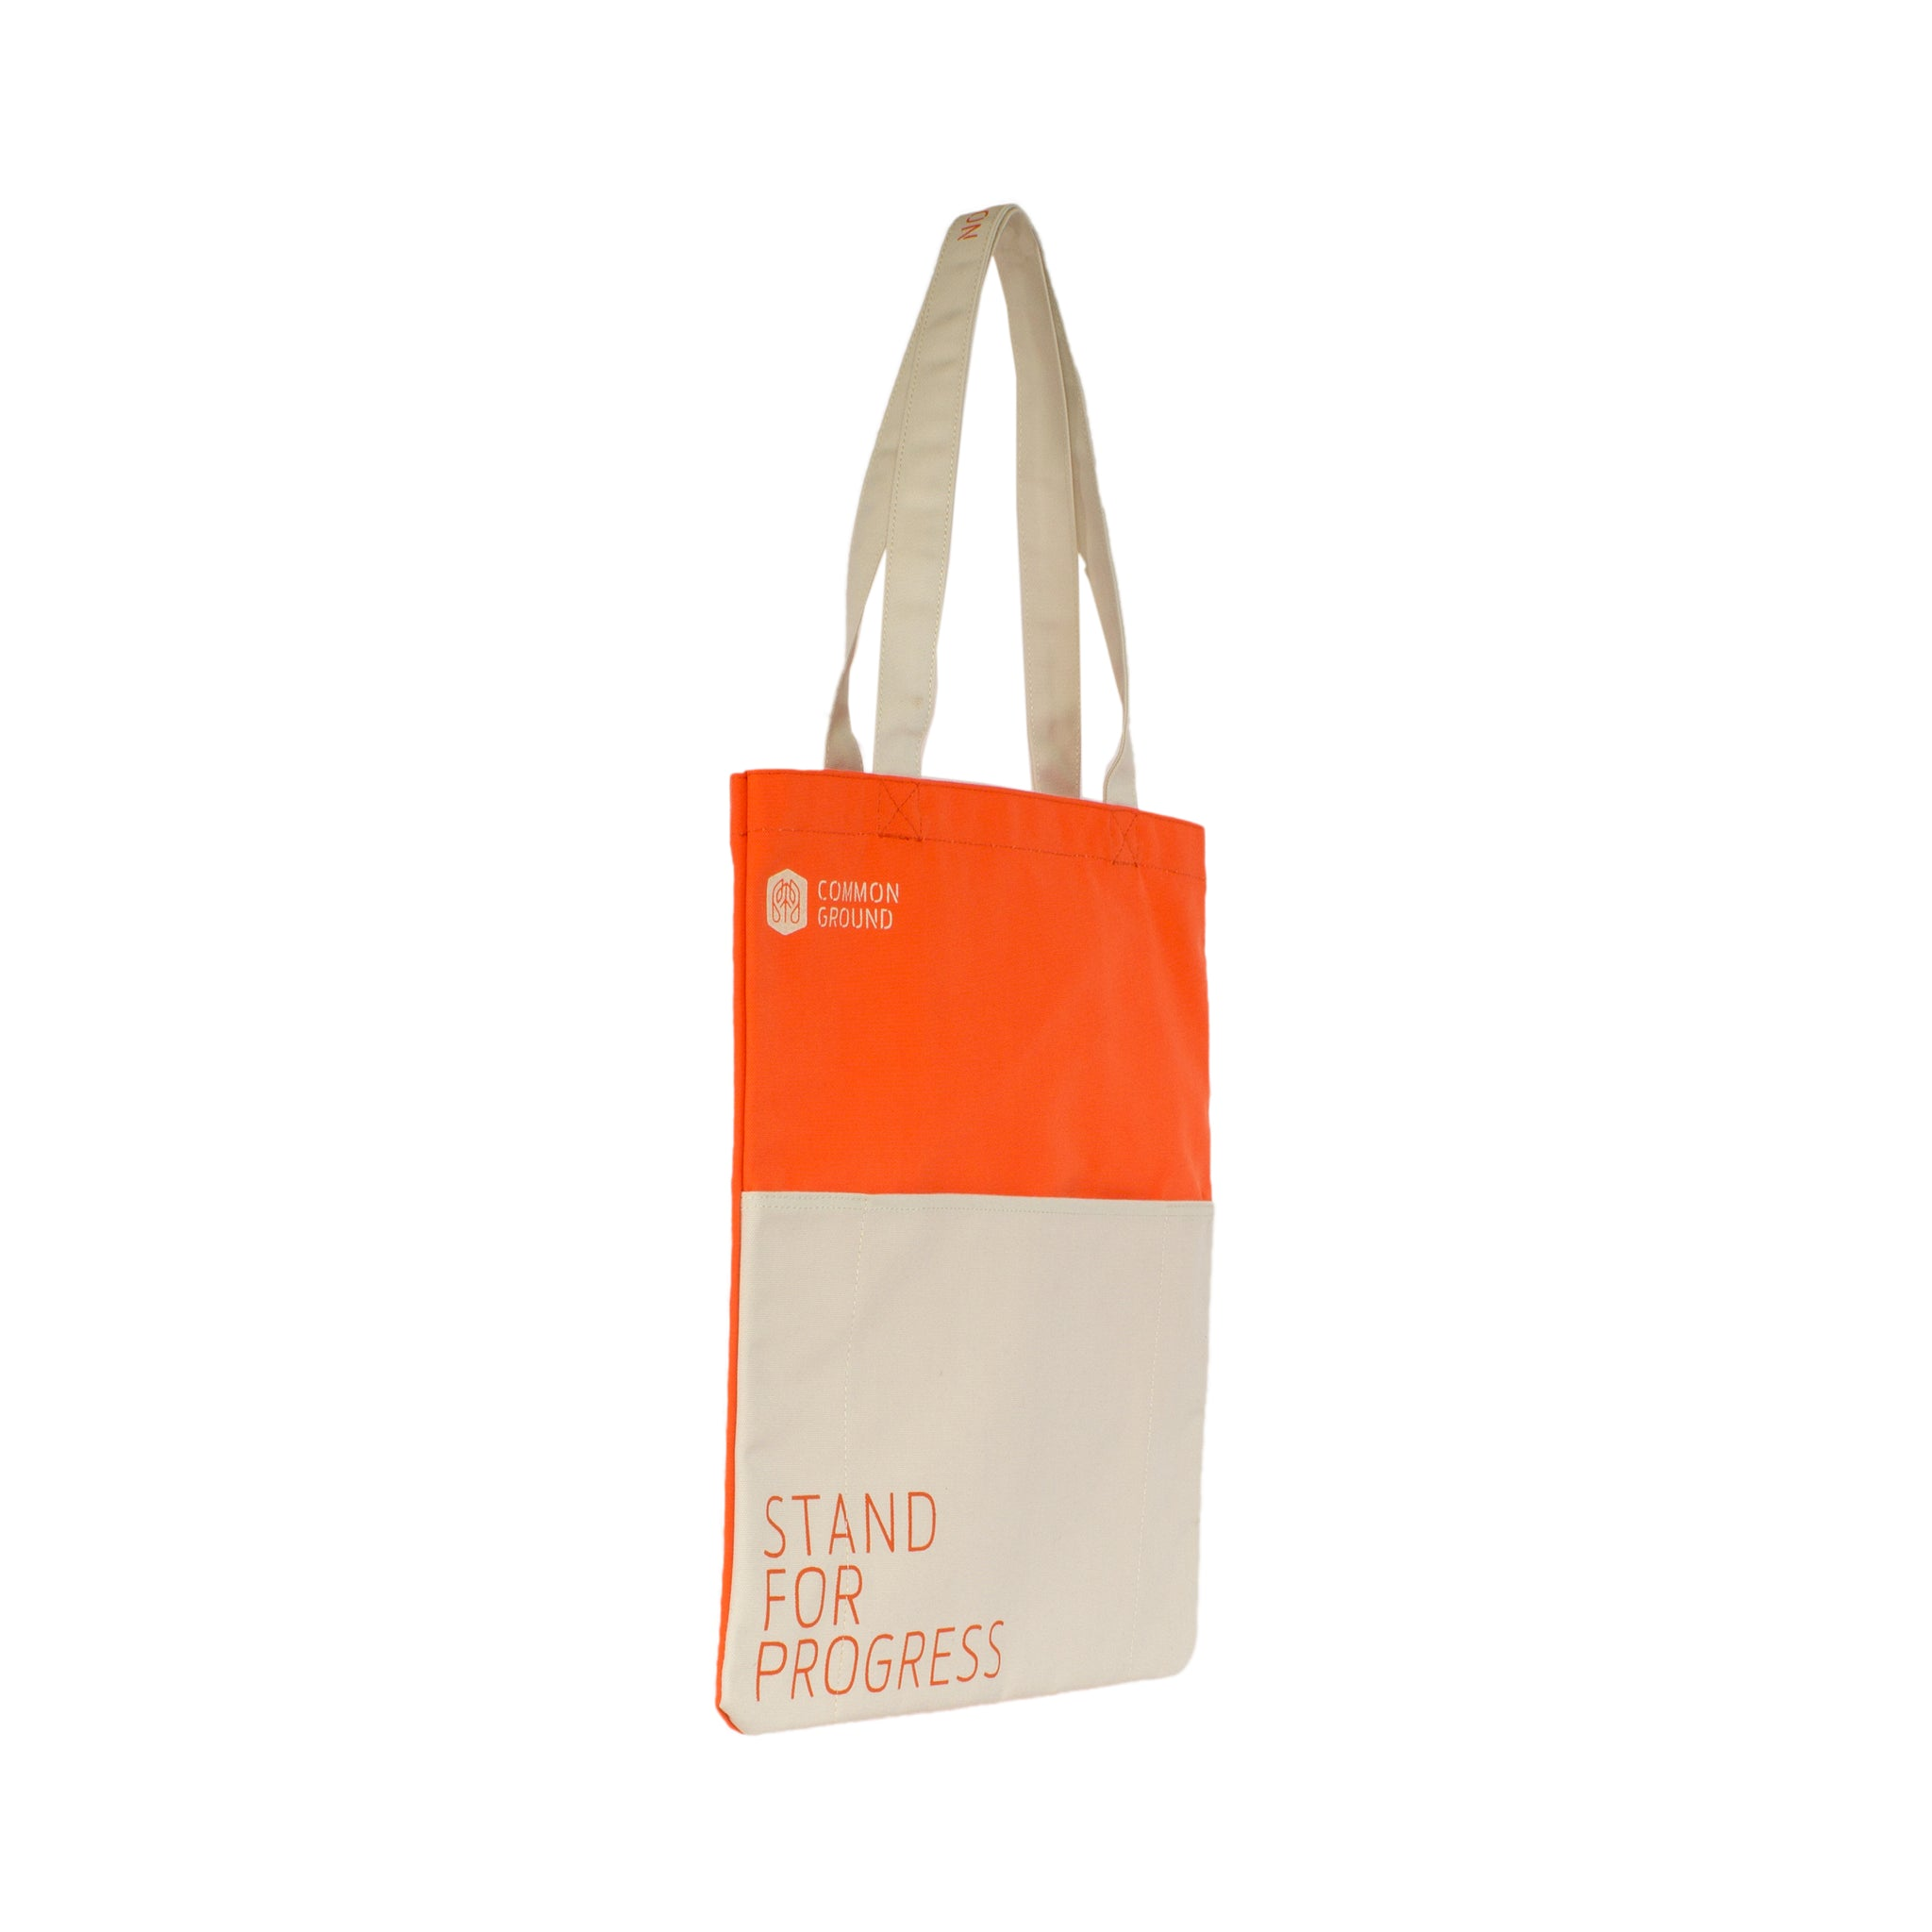 Vibrant_Orange - Common Ground Reading Tote Three Quarter View